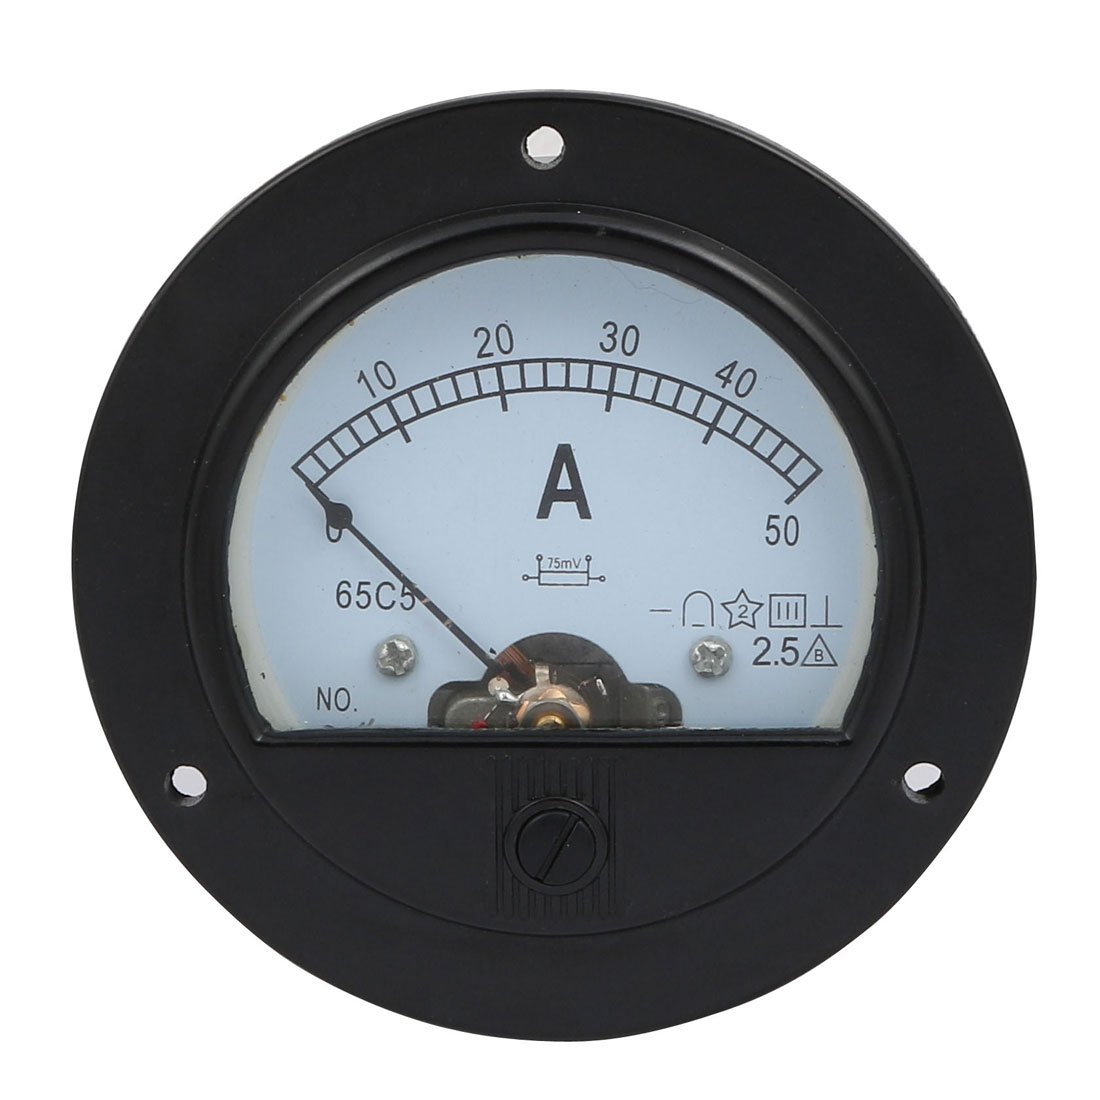 uxcell DC 0-50A Measure Range Round Analog Panel Ammeter Gauge Amperemeter Class 2.5 by uxcell